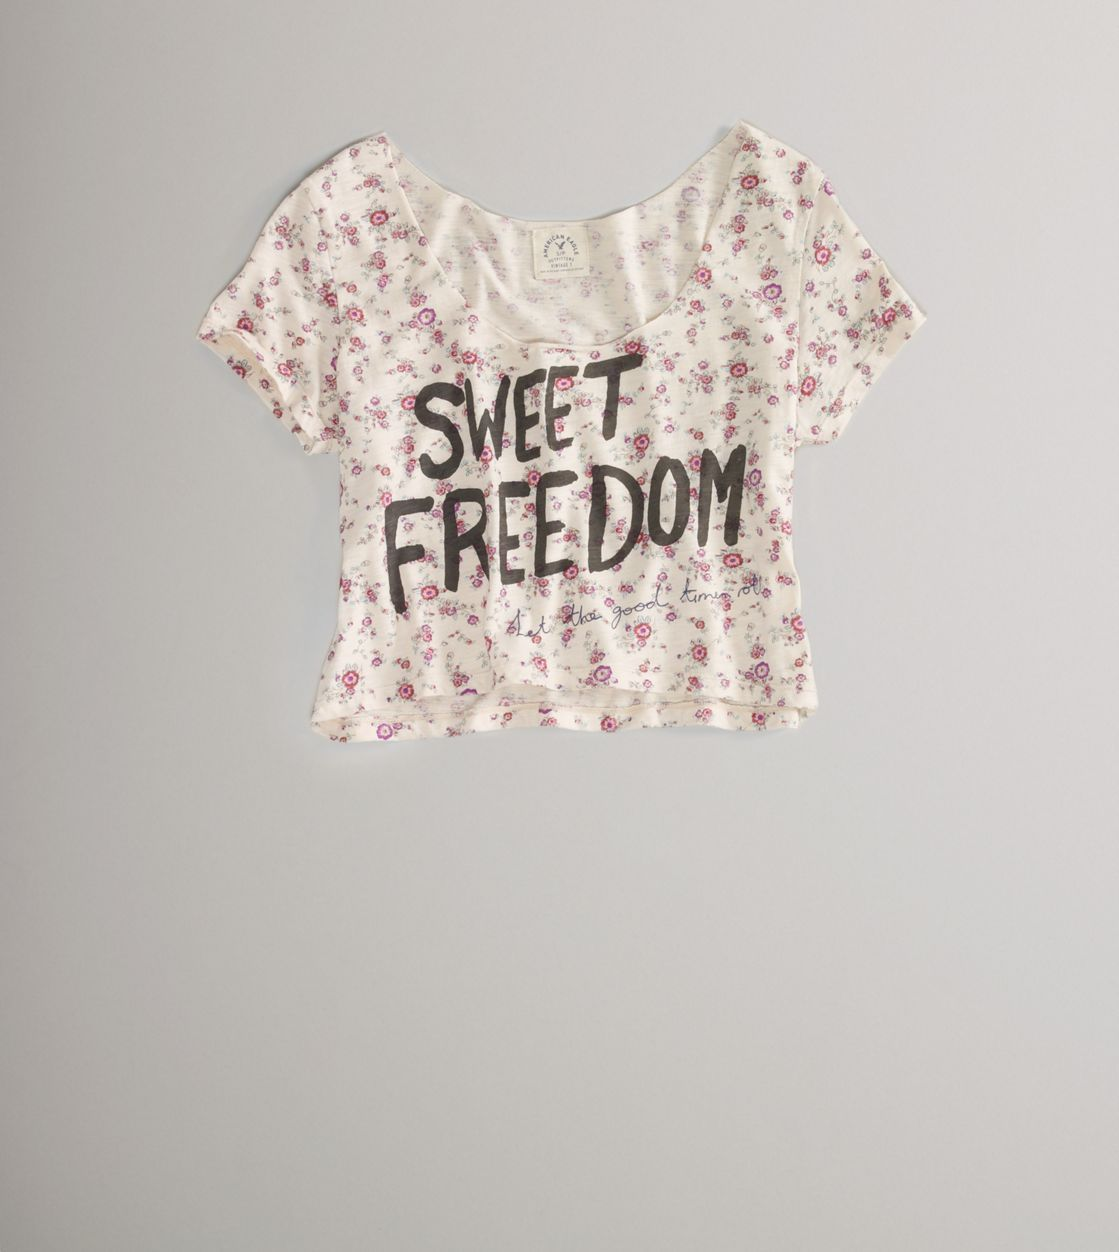 This cropped top was cute! Sweet Freedom Crop Tee by American Eagle